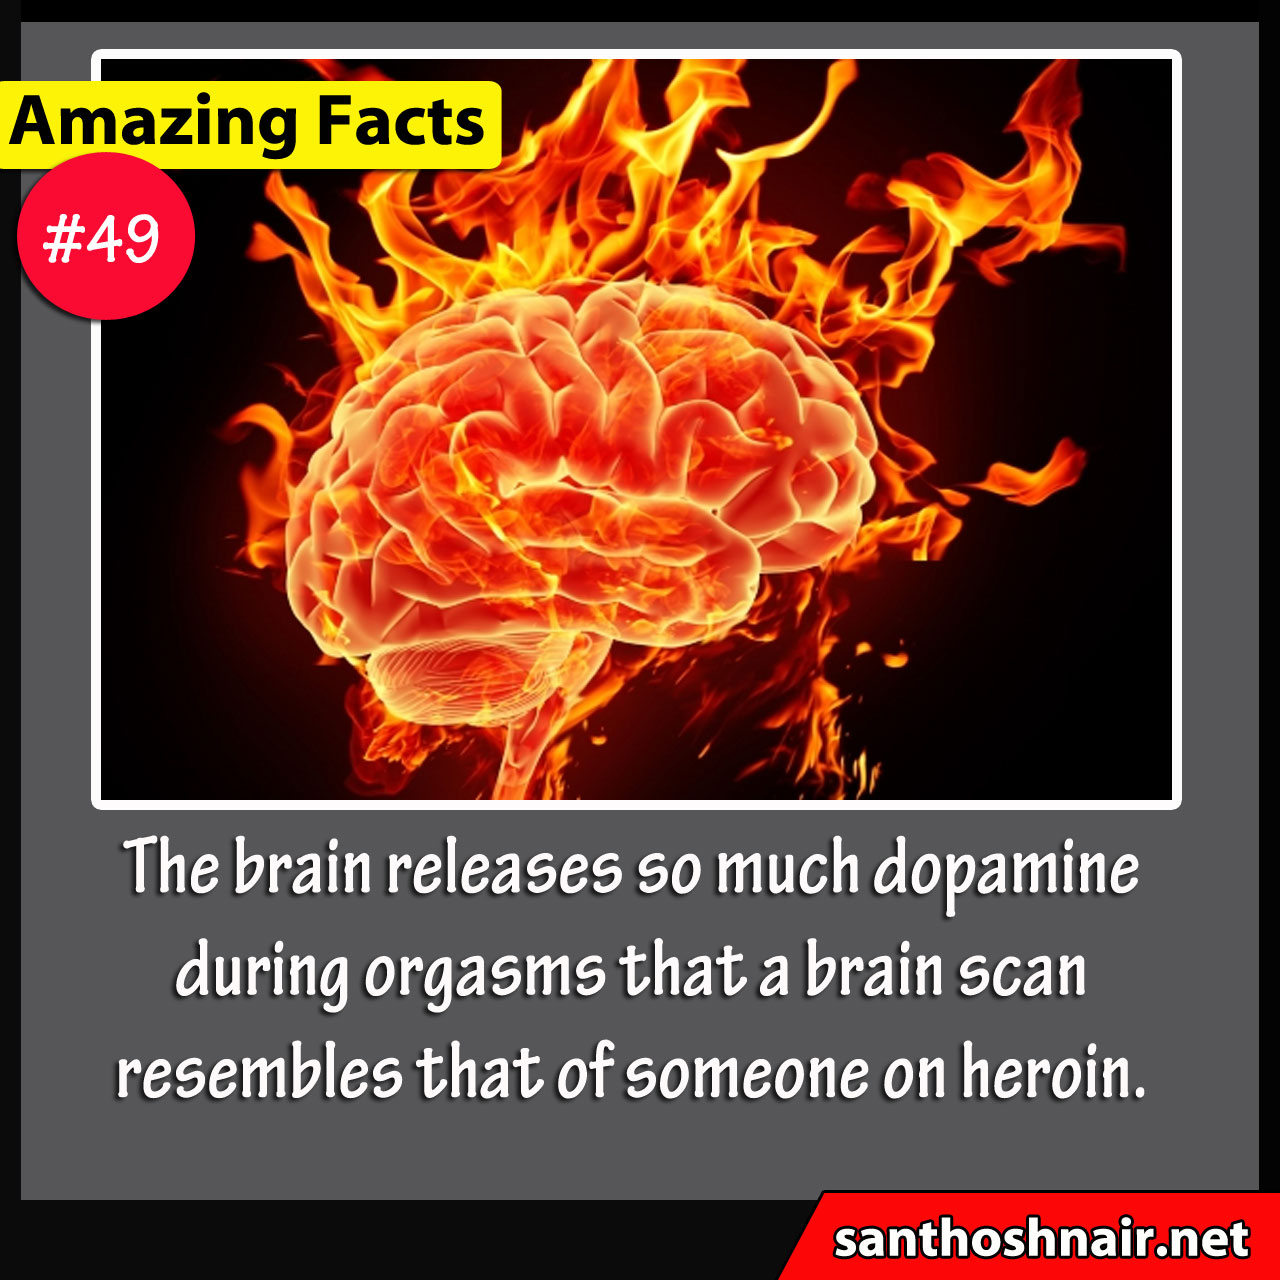 Amazing Facts #49 - Brain releases Dopamine